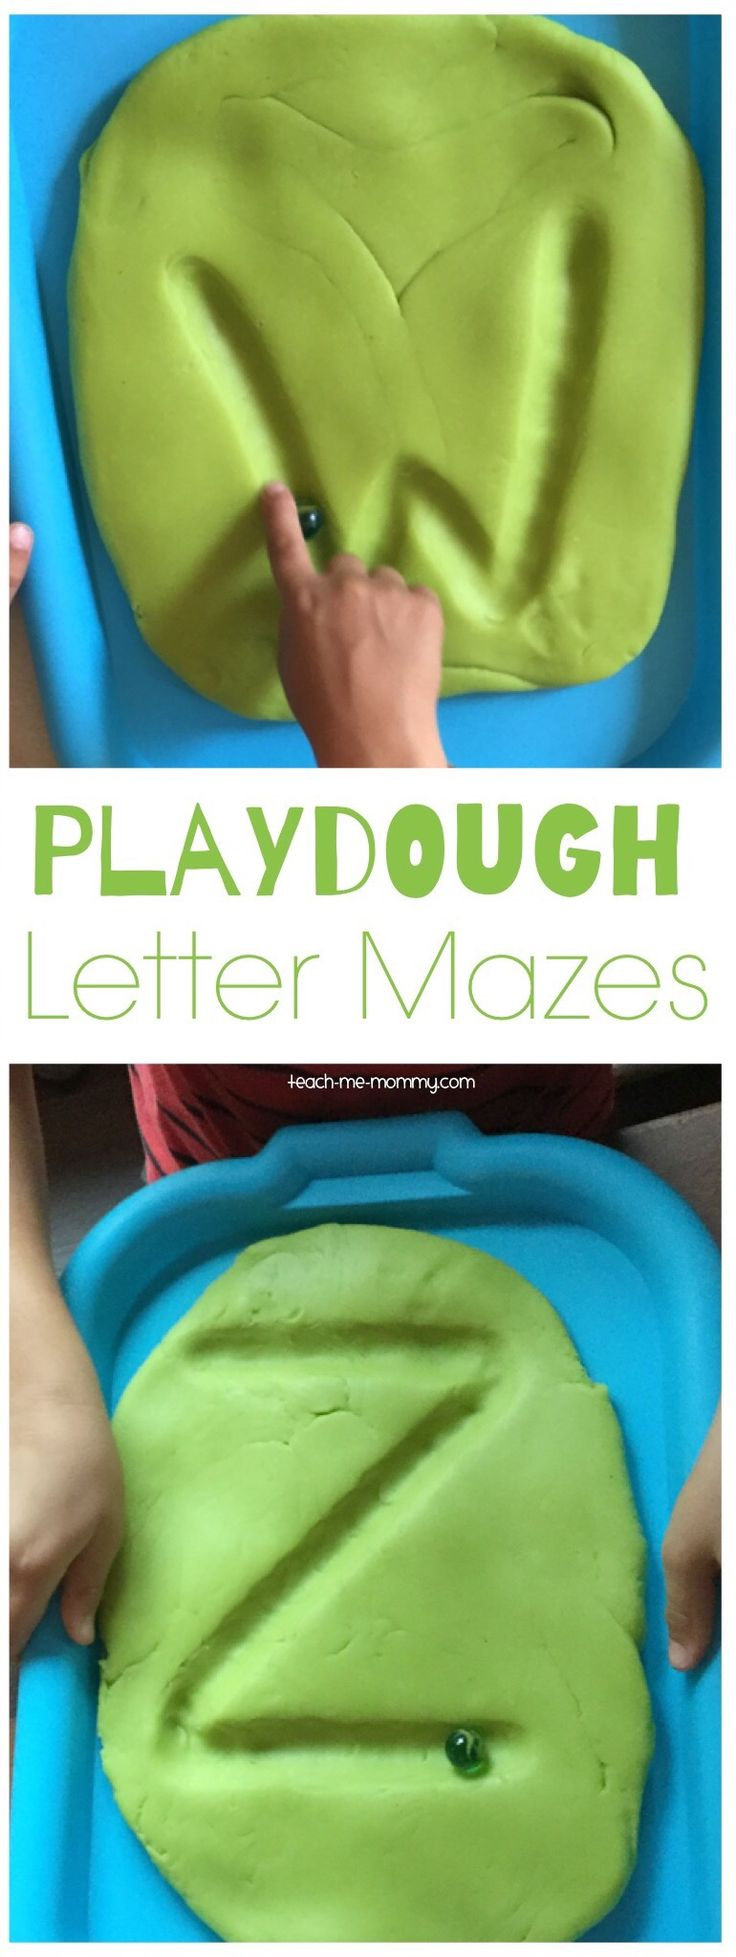 Playdough letter mazes! Clever ABC activity and fine motor game. Pinned by OTToolkit.com. Treatment plans and patient handouts for the OT working with physical disabilities and geriatrics.